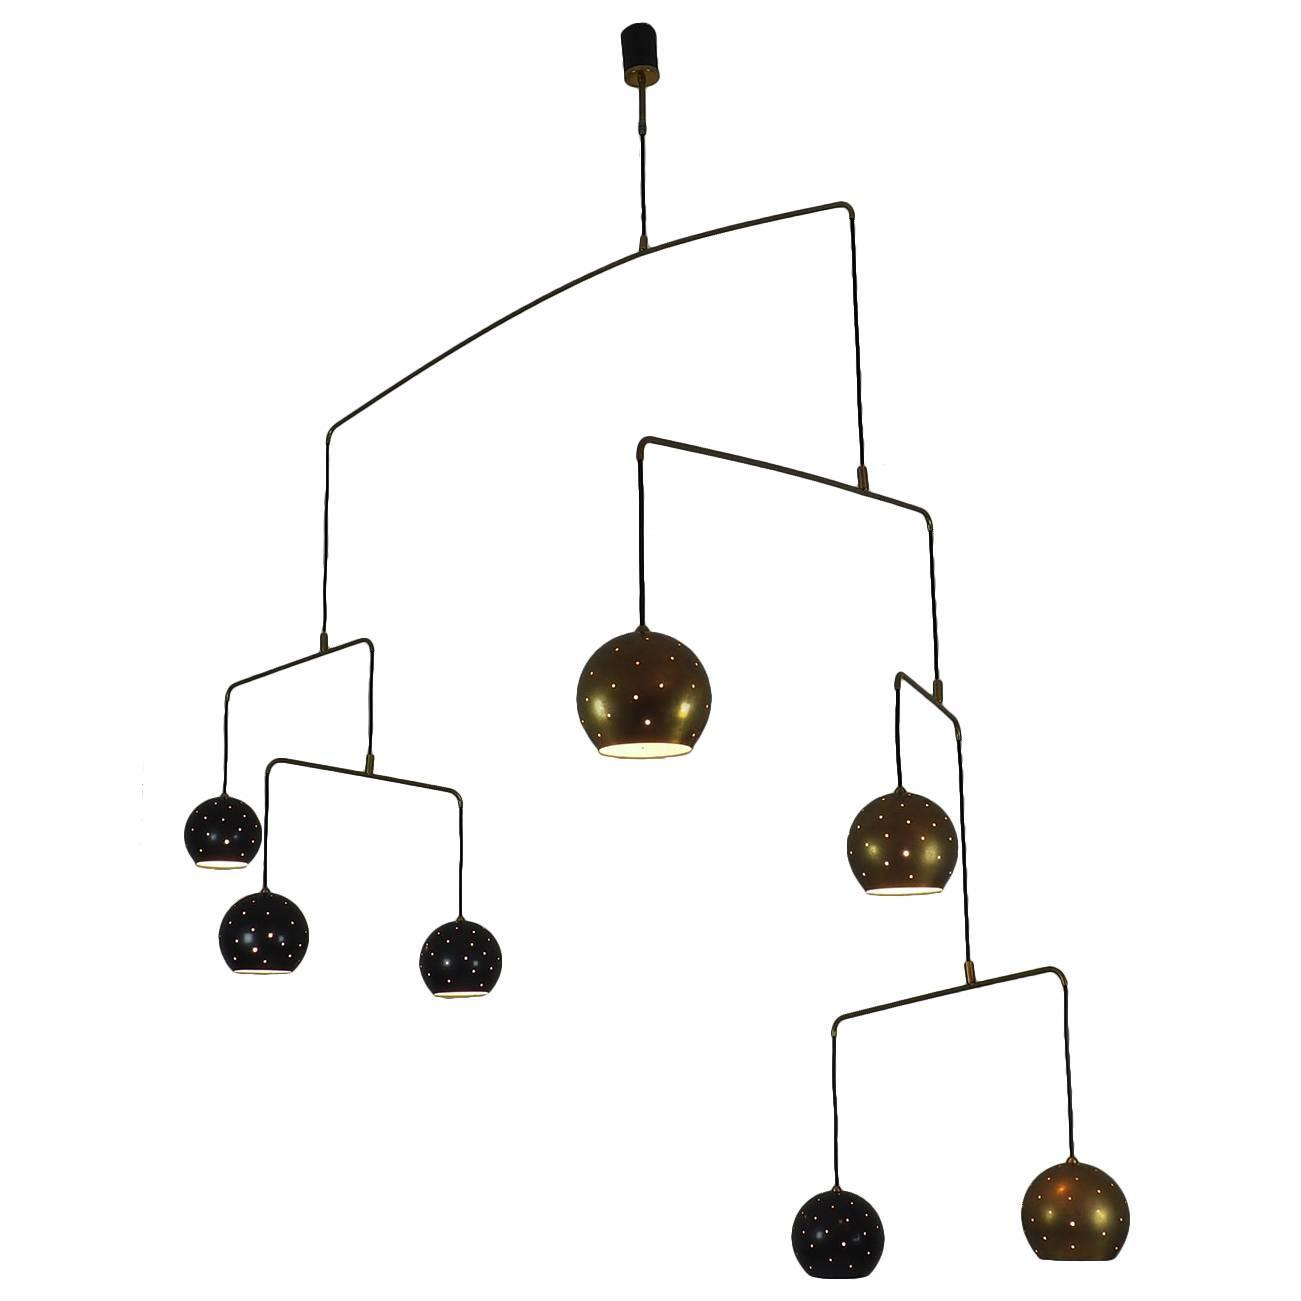 italian large poetic mobile chandelier  u0026quot magico e meditativo u0026quot  milano  xx c  for sale at 1stdibs